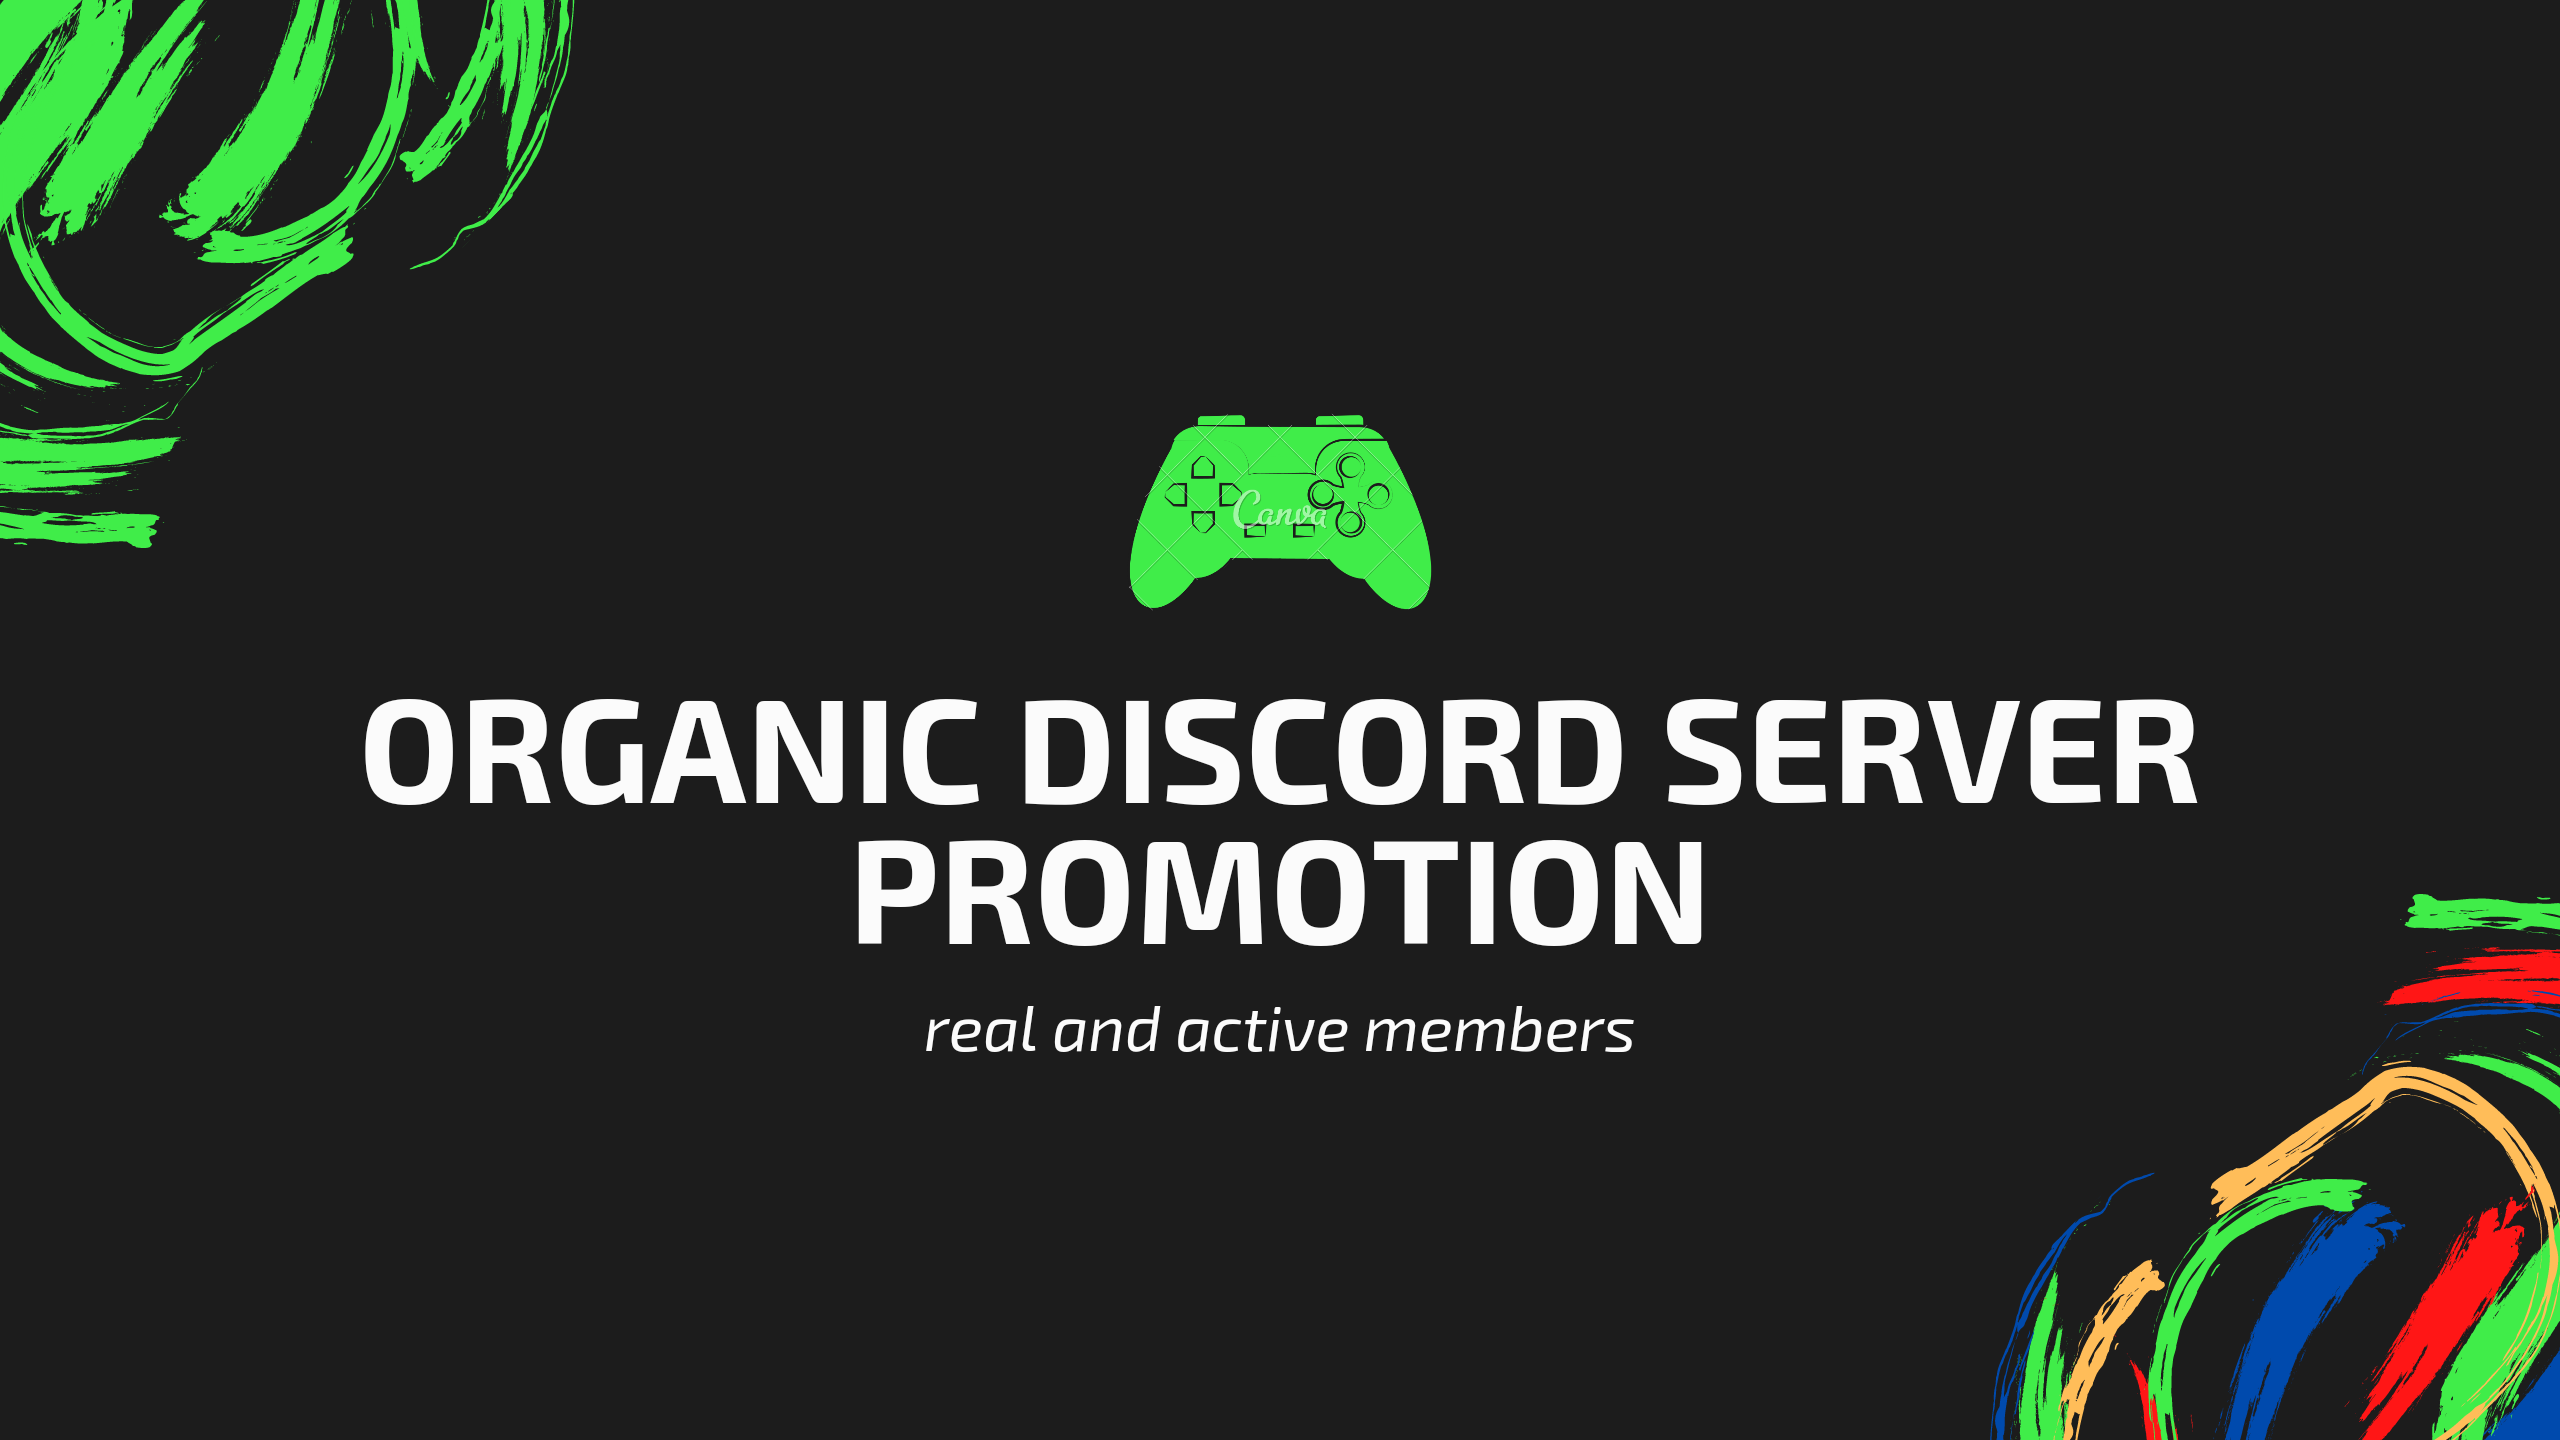 I will organically promote discord server discord server promotion, FiverrBox